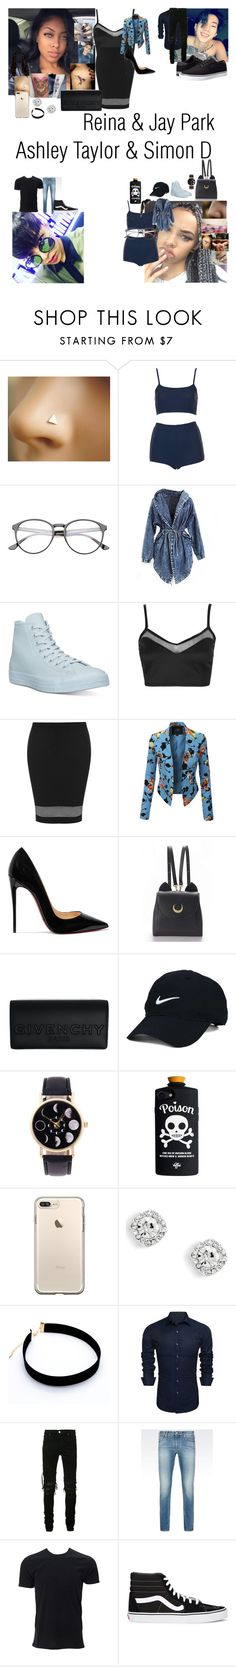 """No one But you"" by teylorann on Polyvore featuring Topshop, Converse, LE3NO, Christian Louboutin, WithChic, Givenchy, Nike Golf, AMIRI, Armani Jeans and Vans"